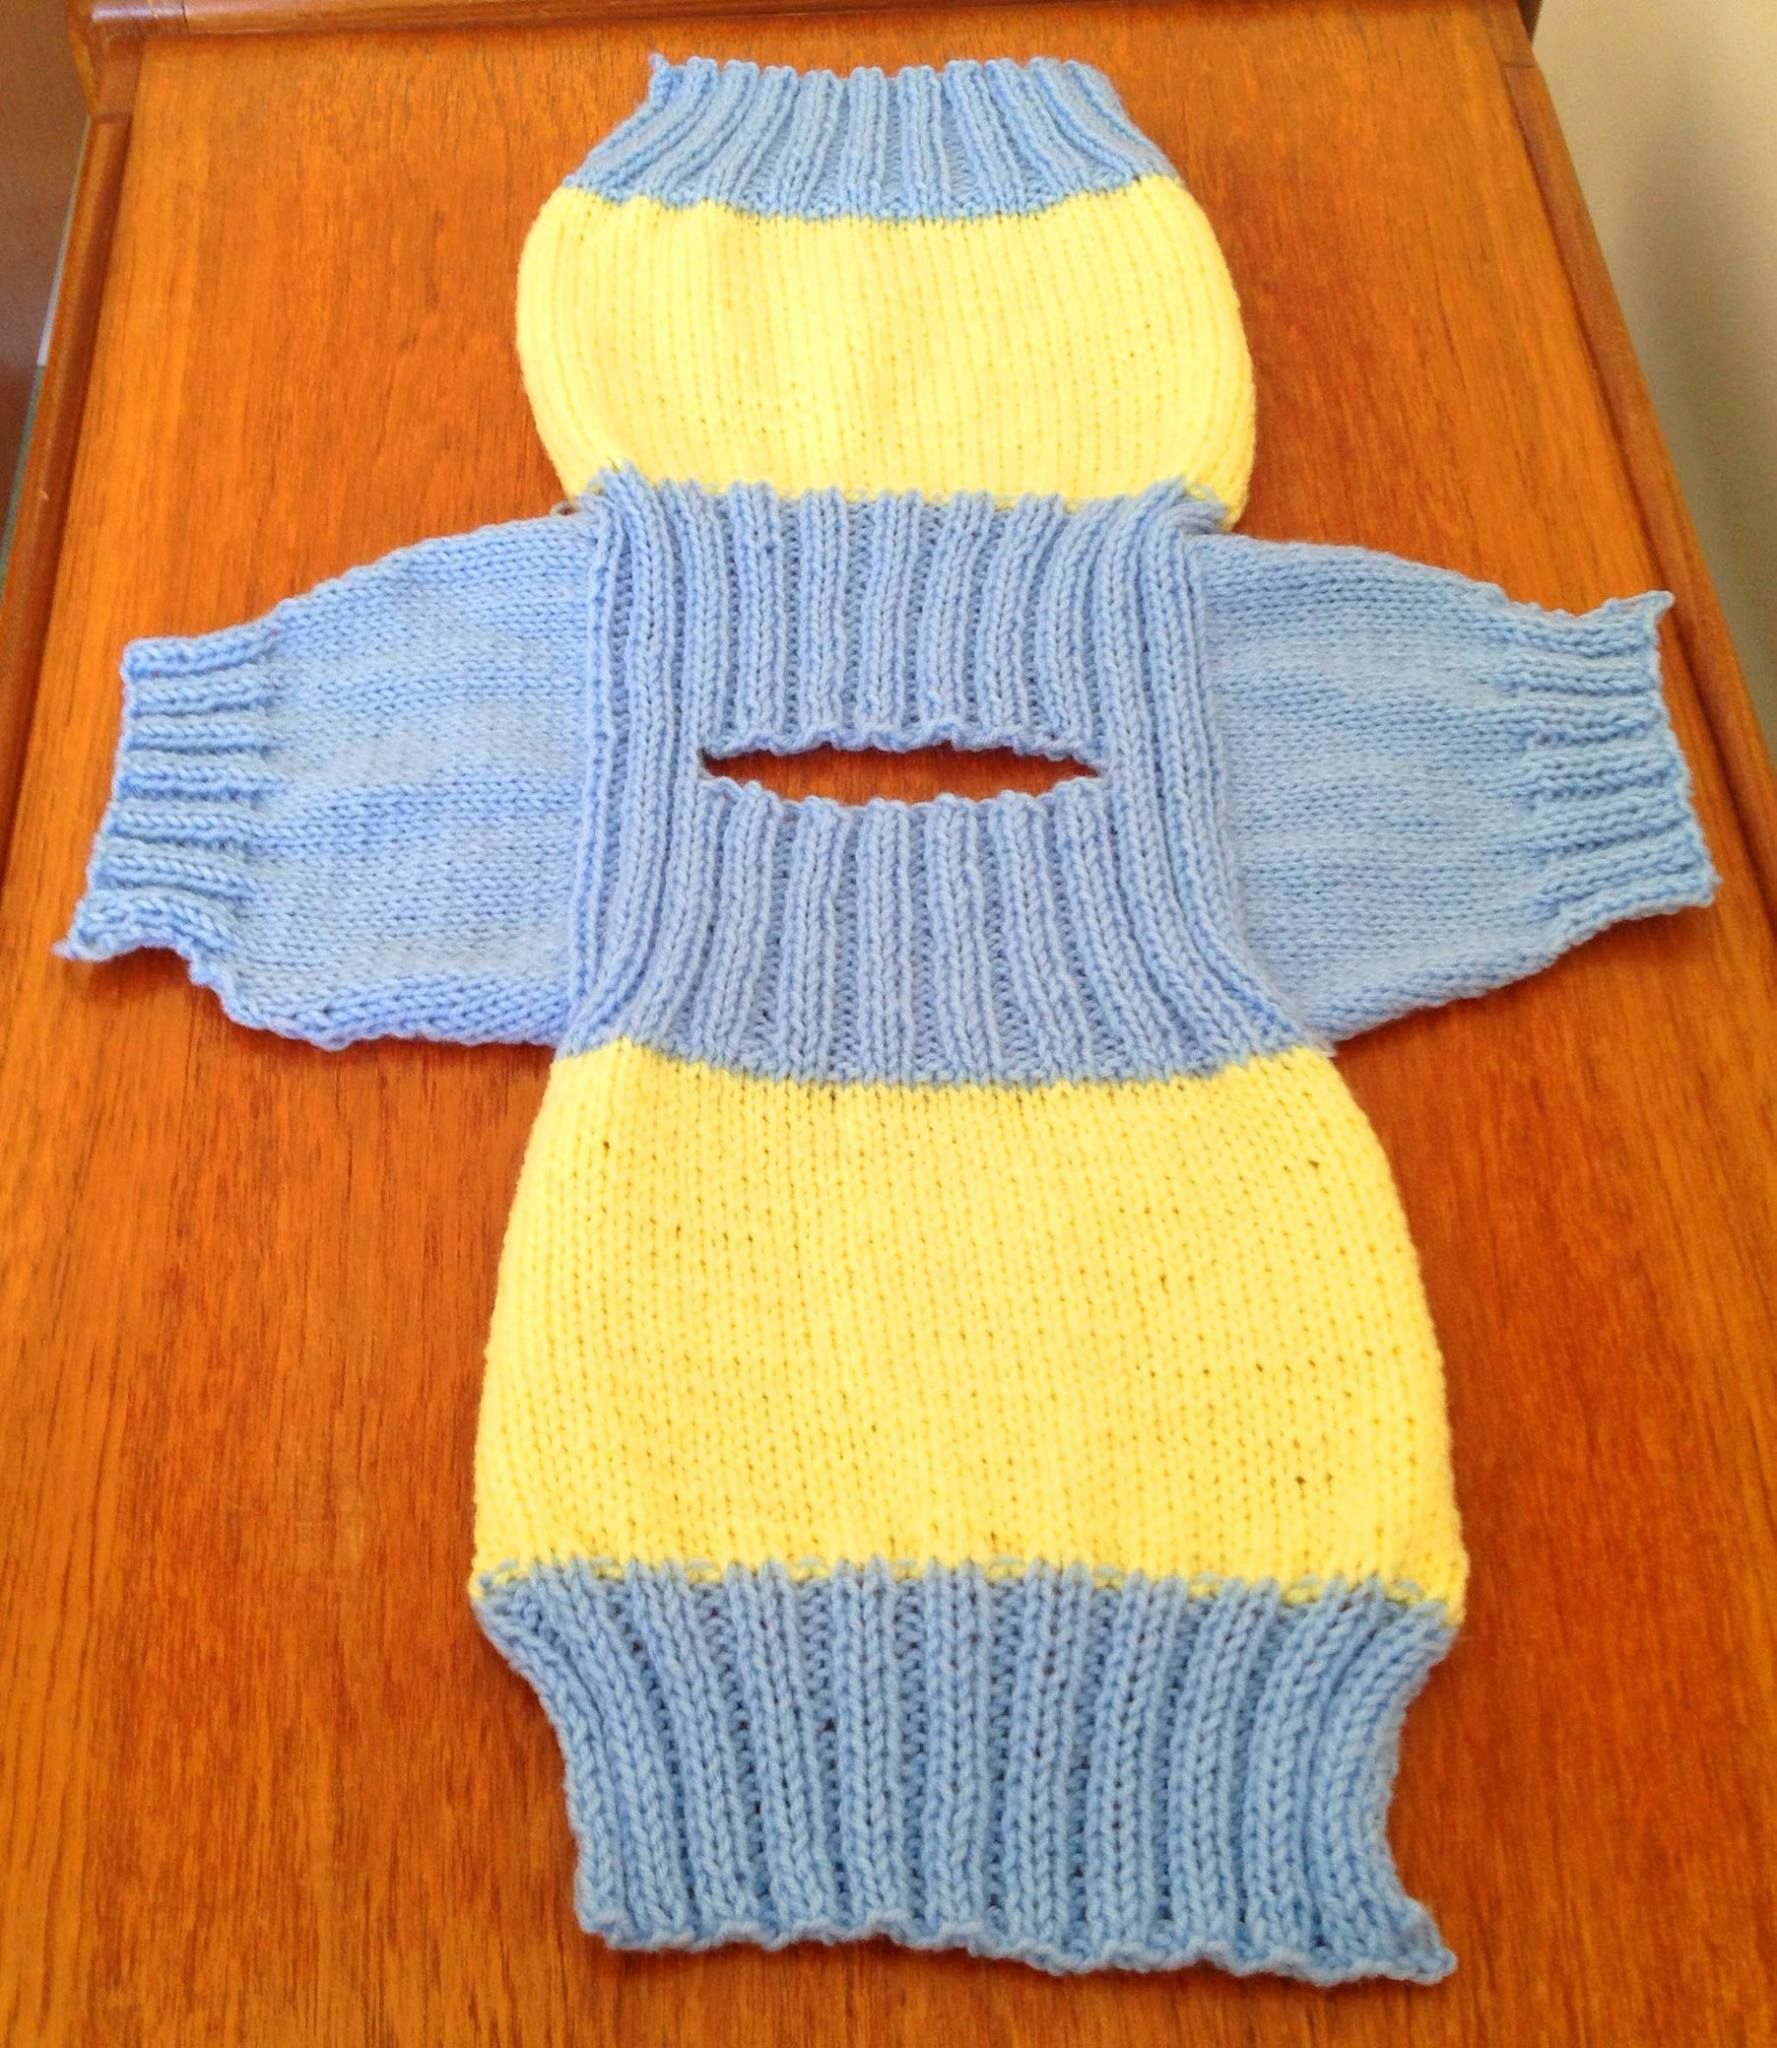 Fish and chip babies knitting pattern knitting patterns fish fish and chip babies knitting pattern bankloansurffo Gallery